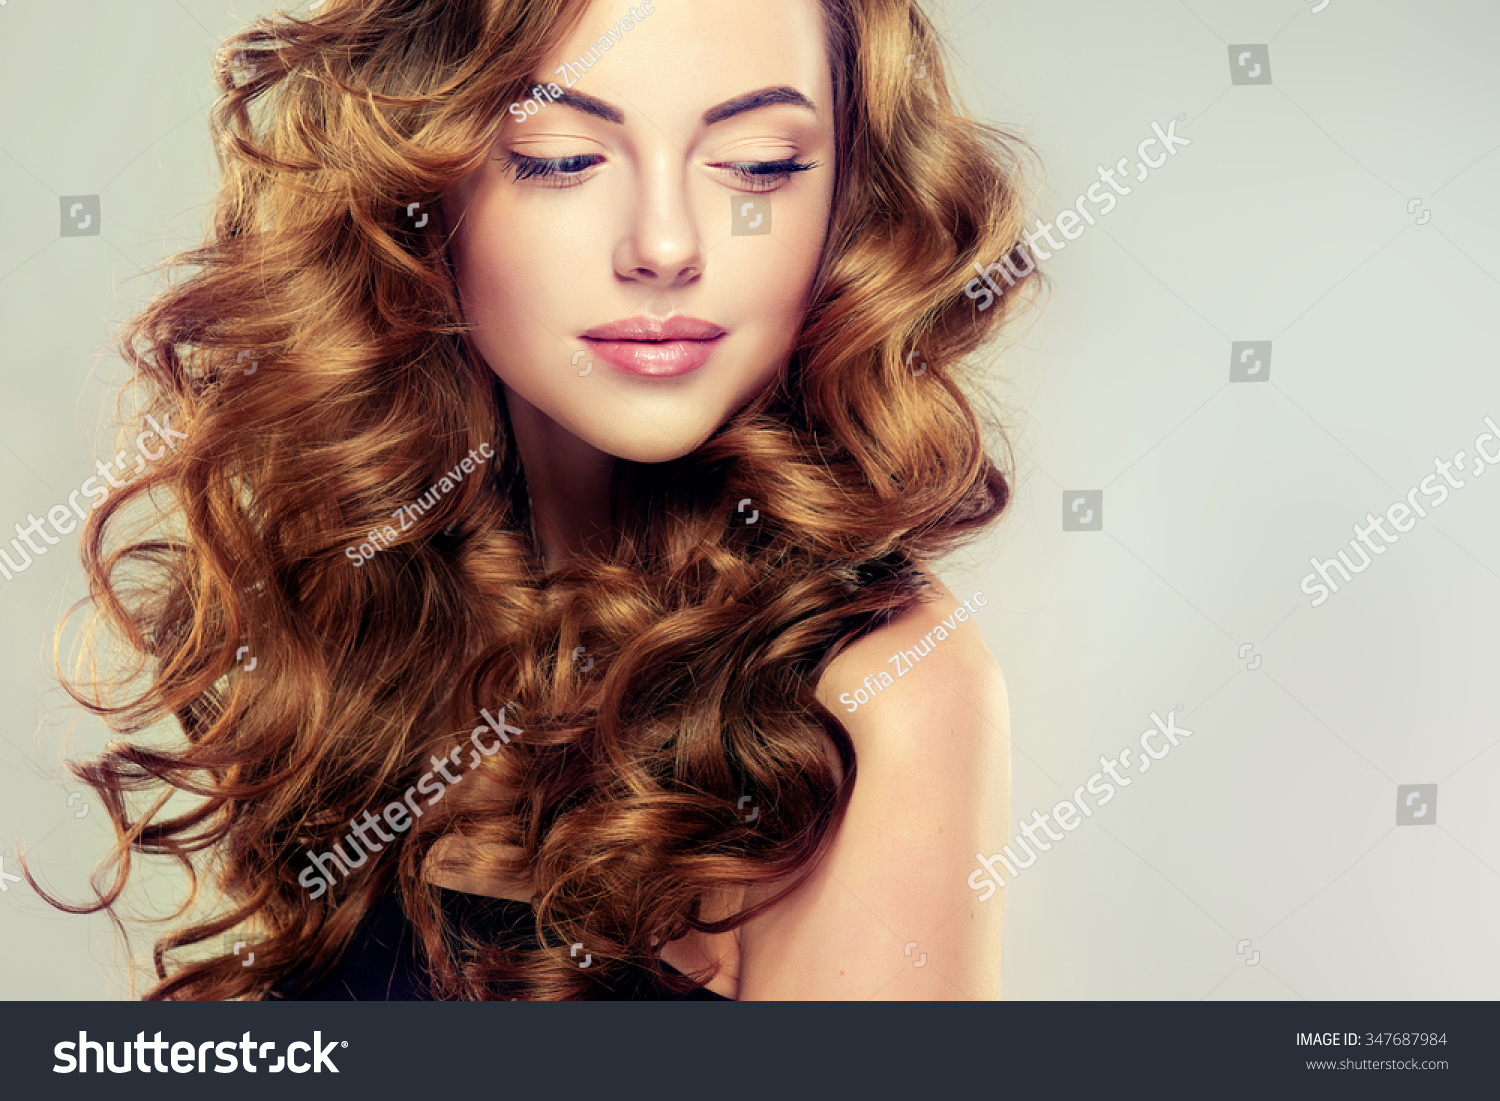 Beautiful Girl Long Wavy Hair Brunette Stock Photo ...